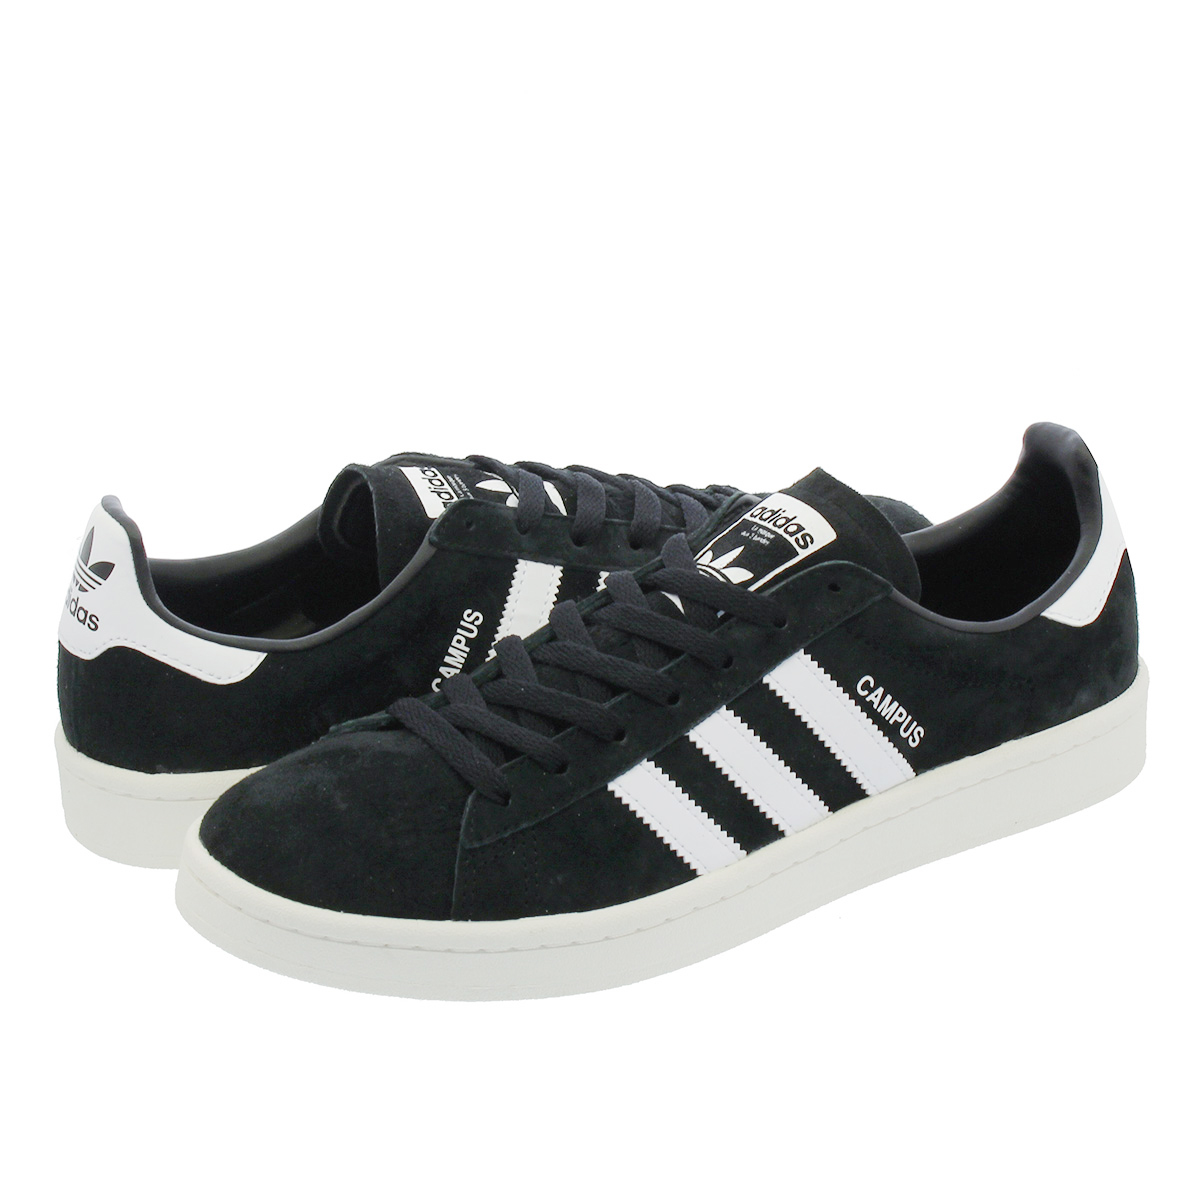 adidas campus Shoes 60items Rakuten Global Market    adidas campus Shoes 60items   title=          Rakuten Global Market